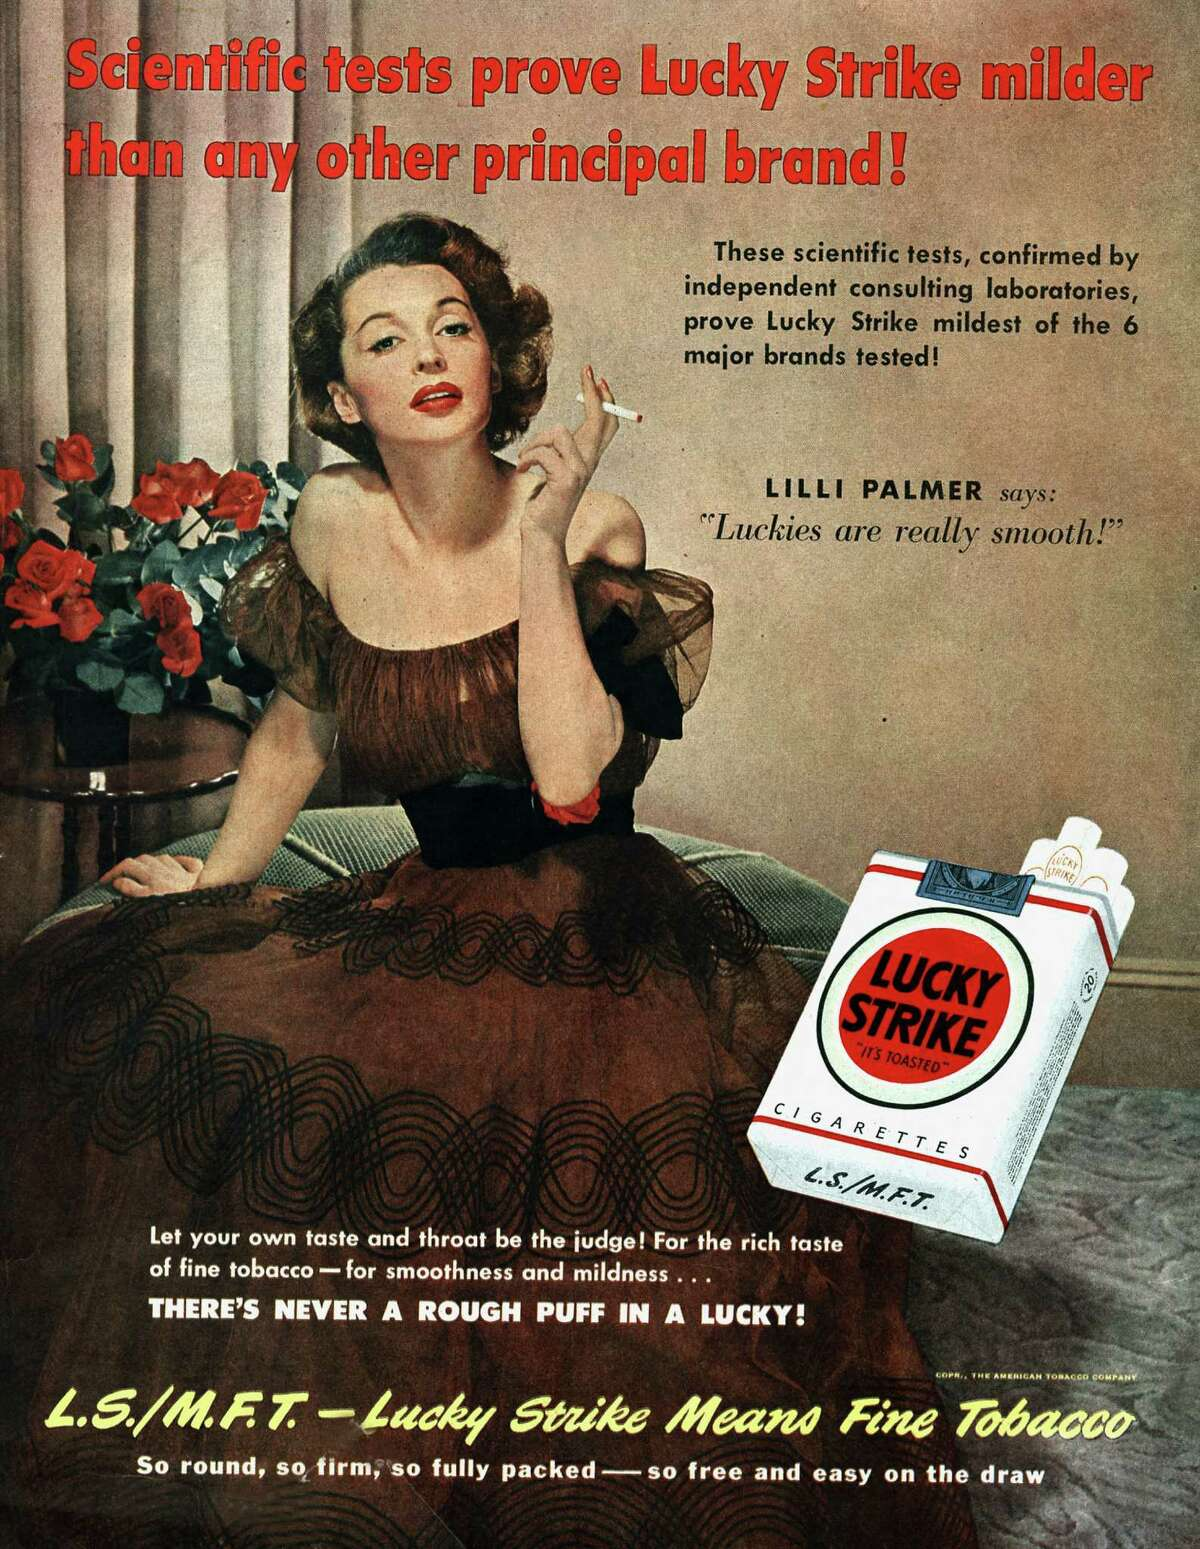 >> VINTAGE CIGARETTE ADS THROUGH THE YEARS Lilli Palmer posing for advertising for Lucky Strike, published in American magazine Saturday Evening Post, June 1950.